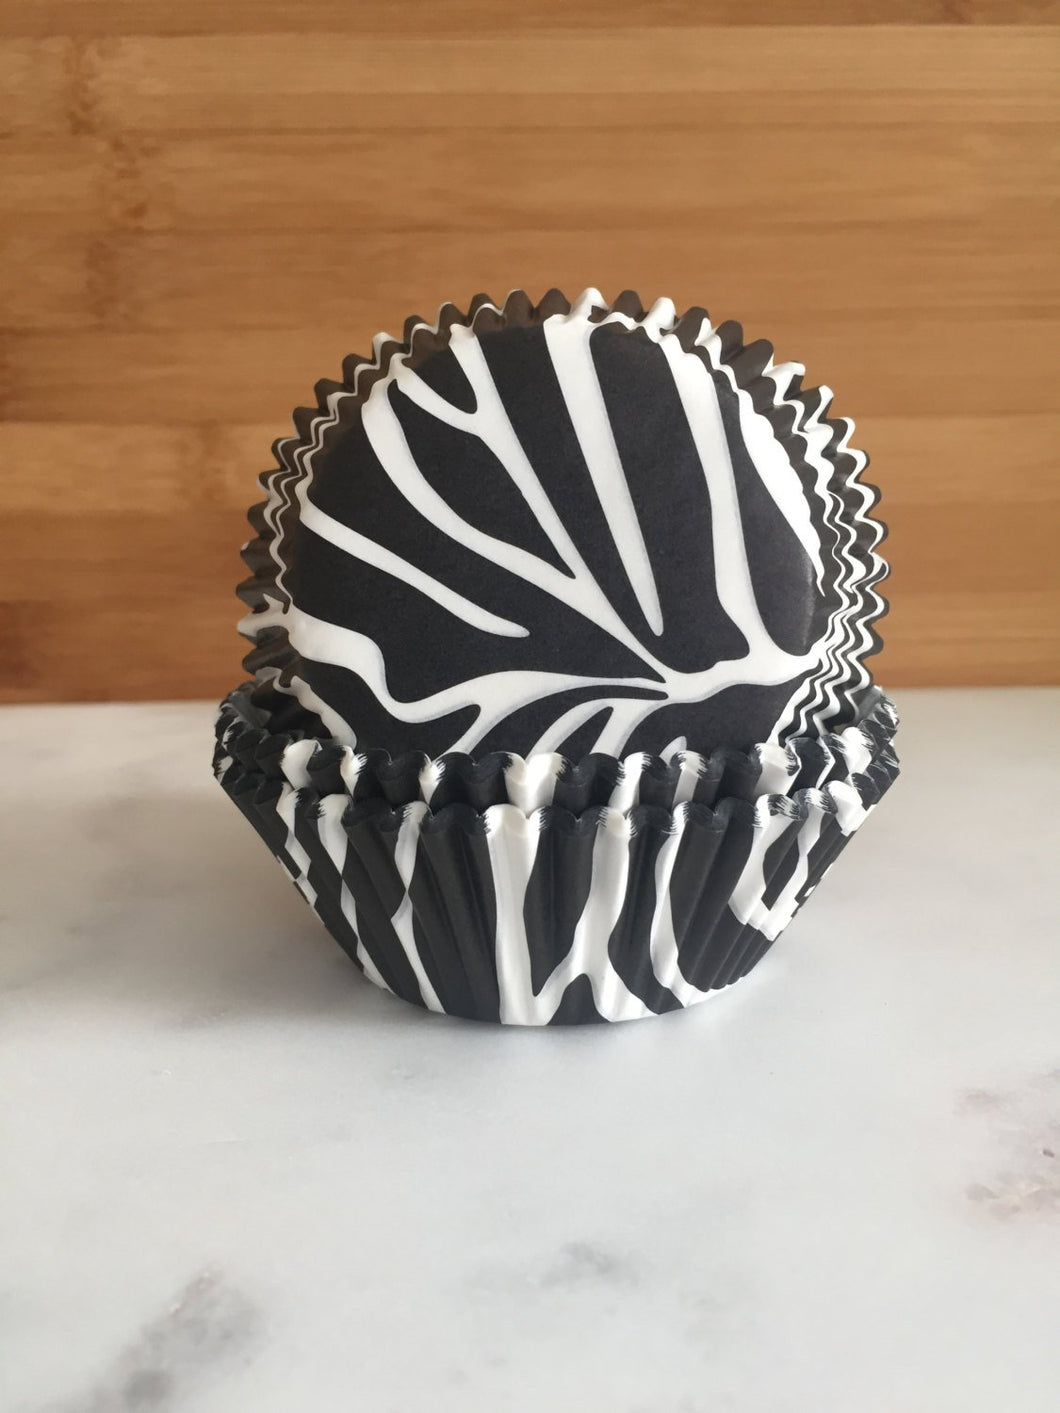 Zebra Cupcake Liners, Standard Sized, Baking Cups (50)